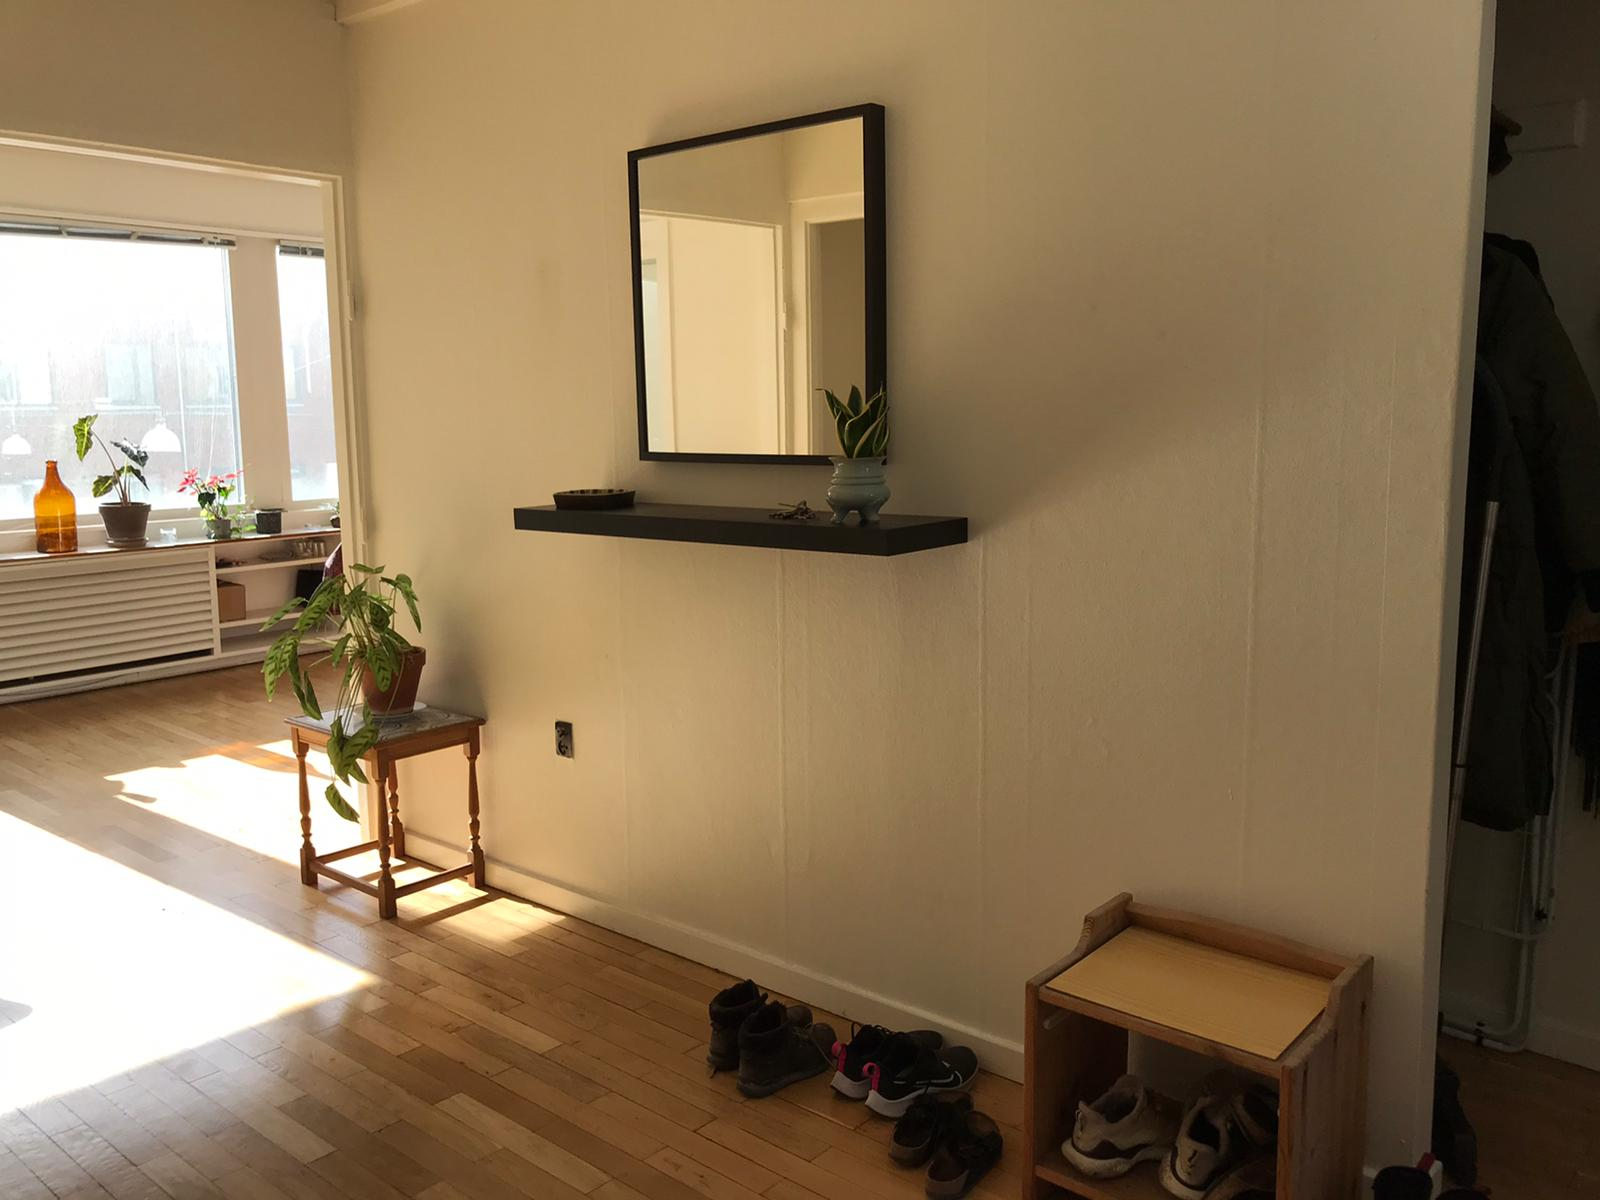 Room for rent in the center of Frederiksberg